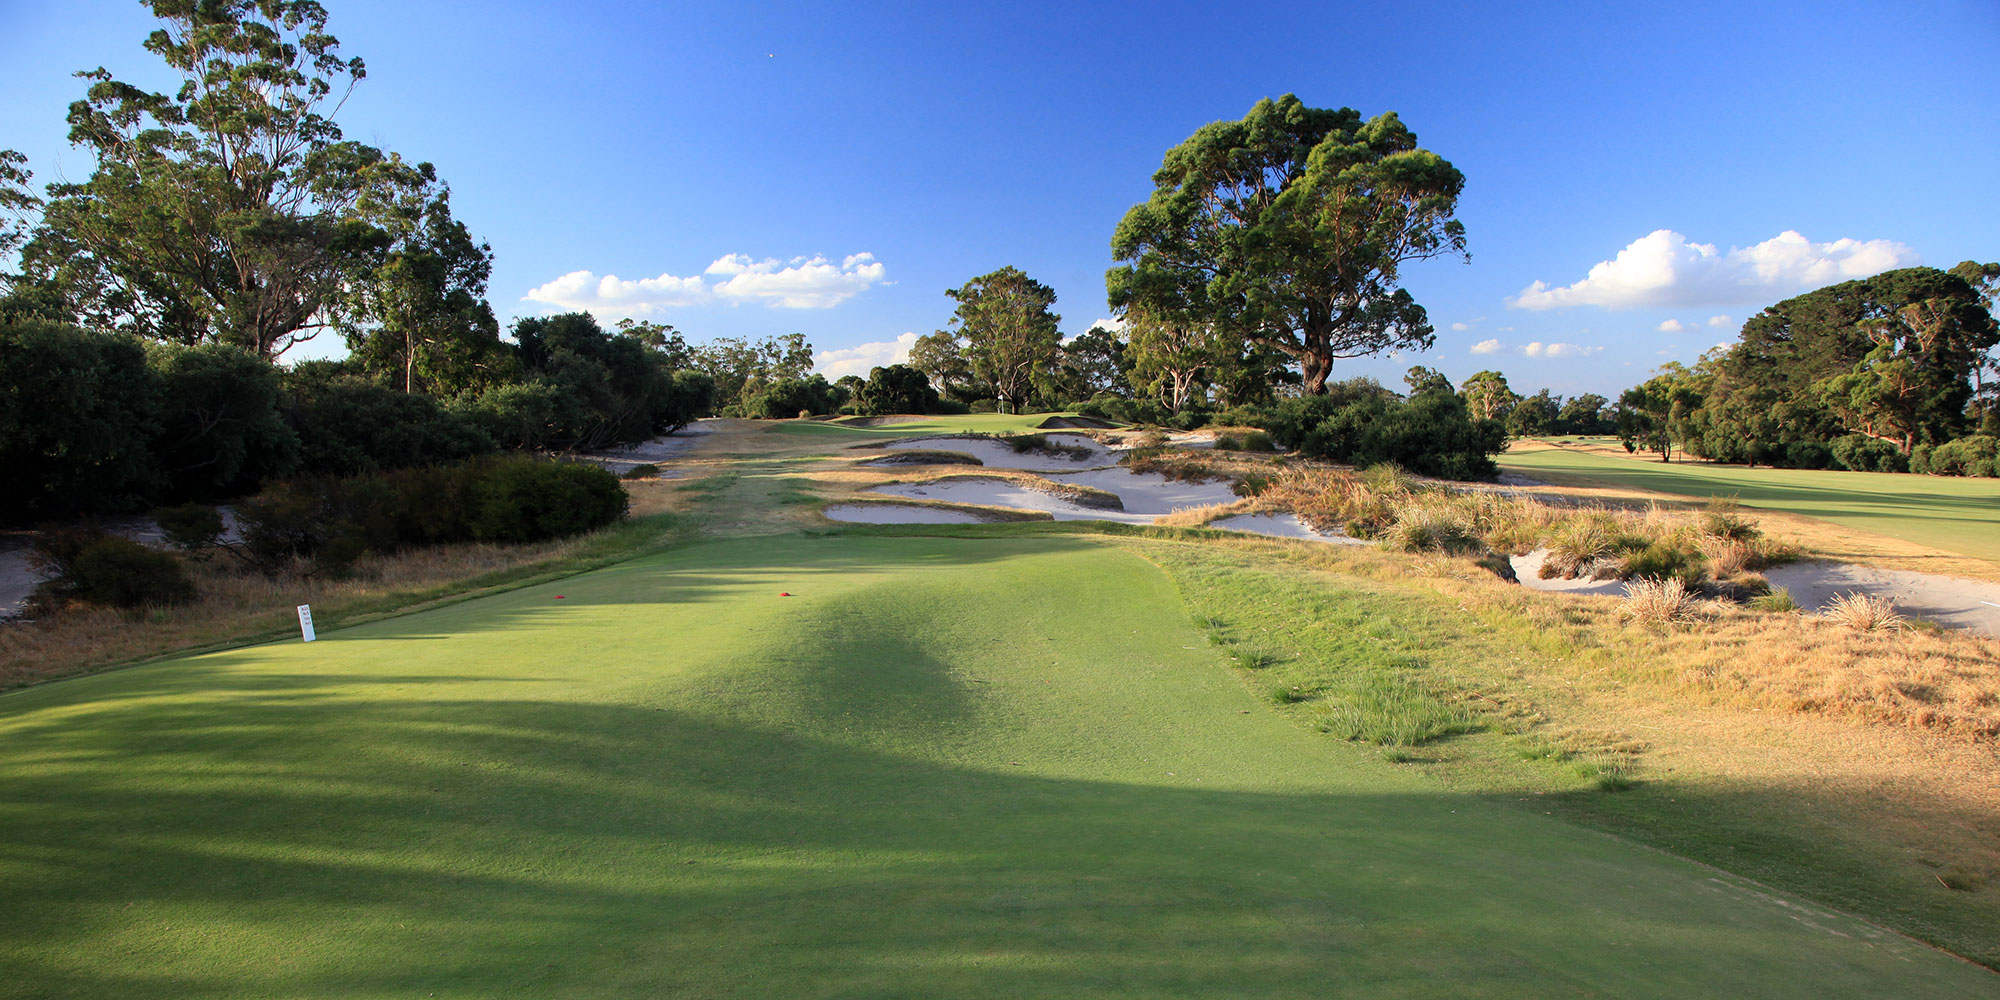 Melbourne Sandbelt Tour | Jan 21 dates available | 4 nights, 5 games